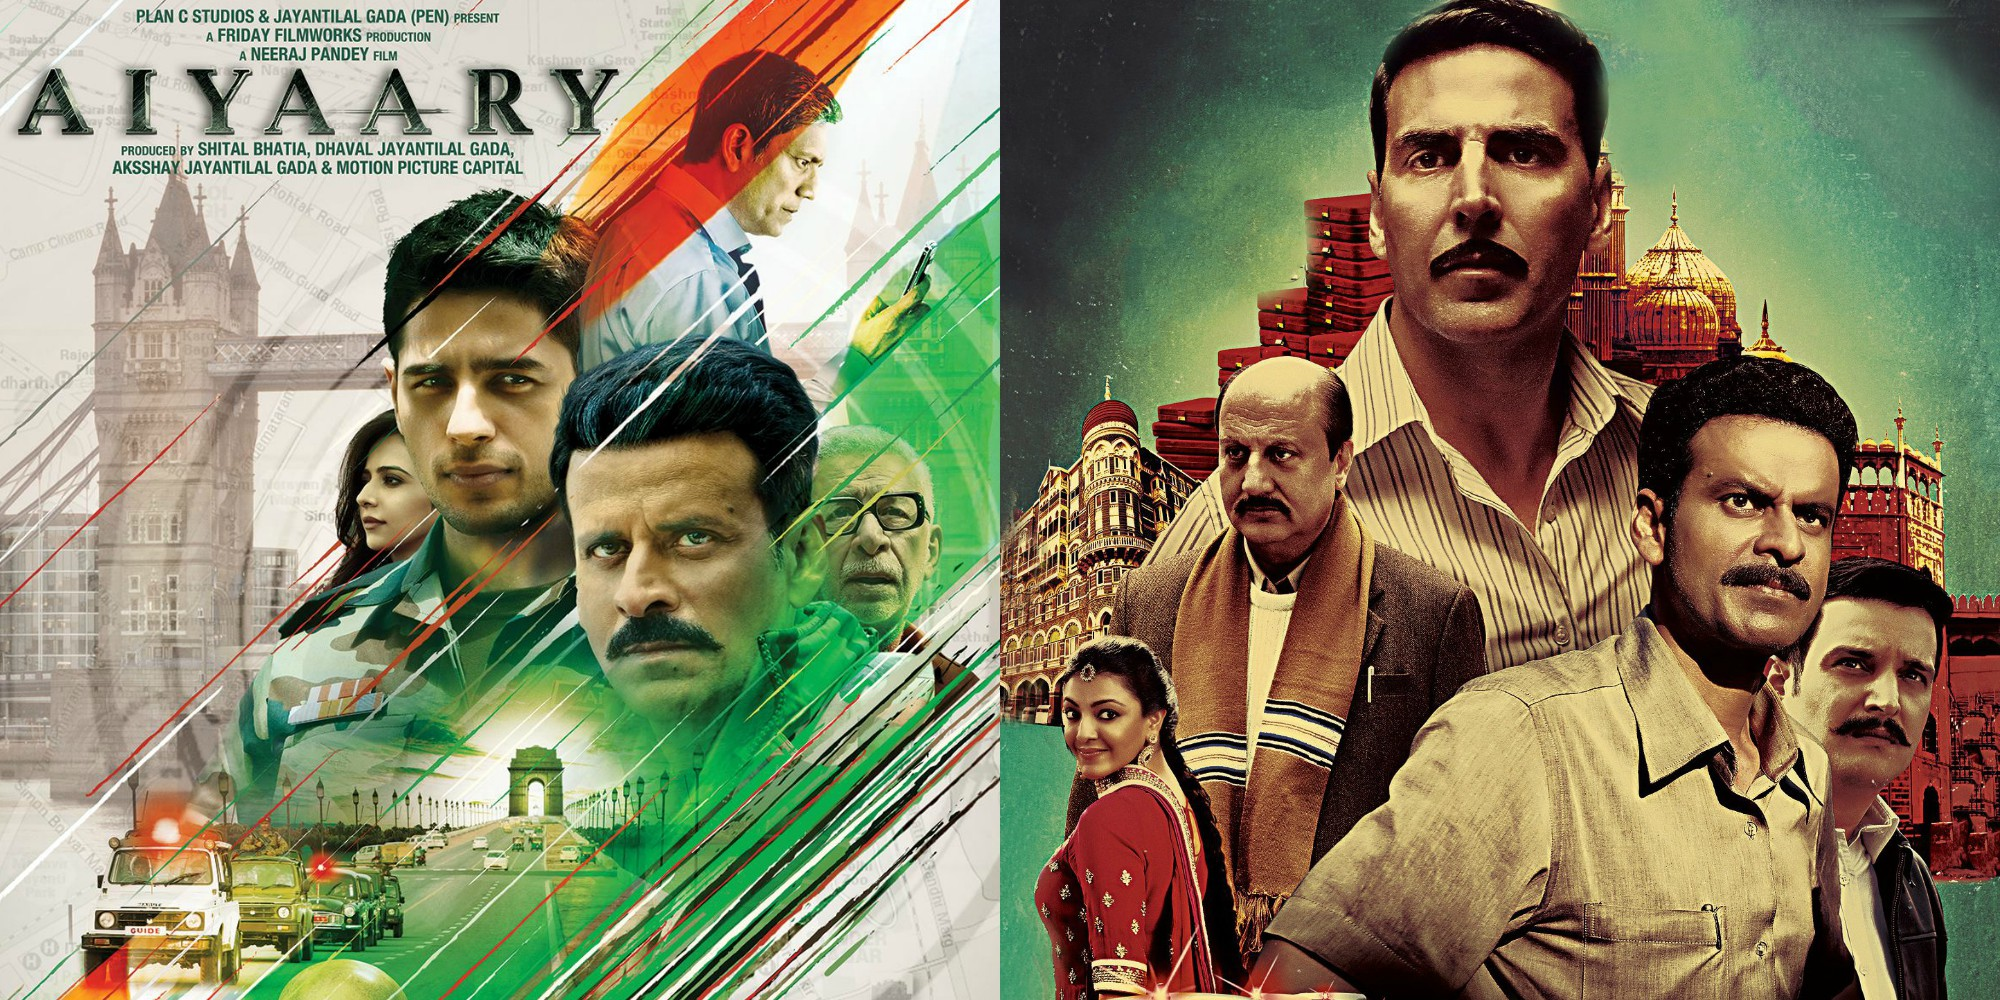 LISTEN UP! Aiyaary has a SPECIAL connection with Special 26